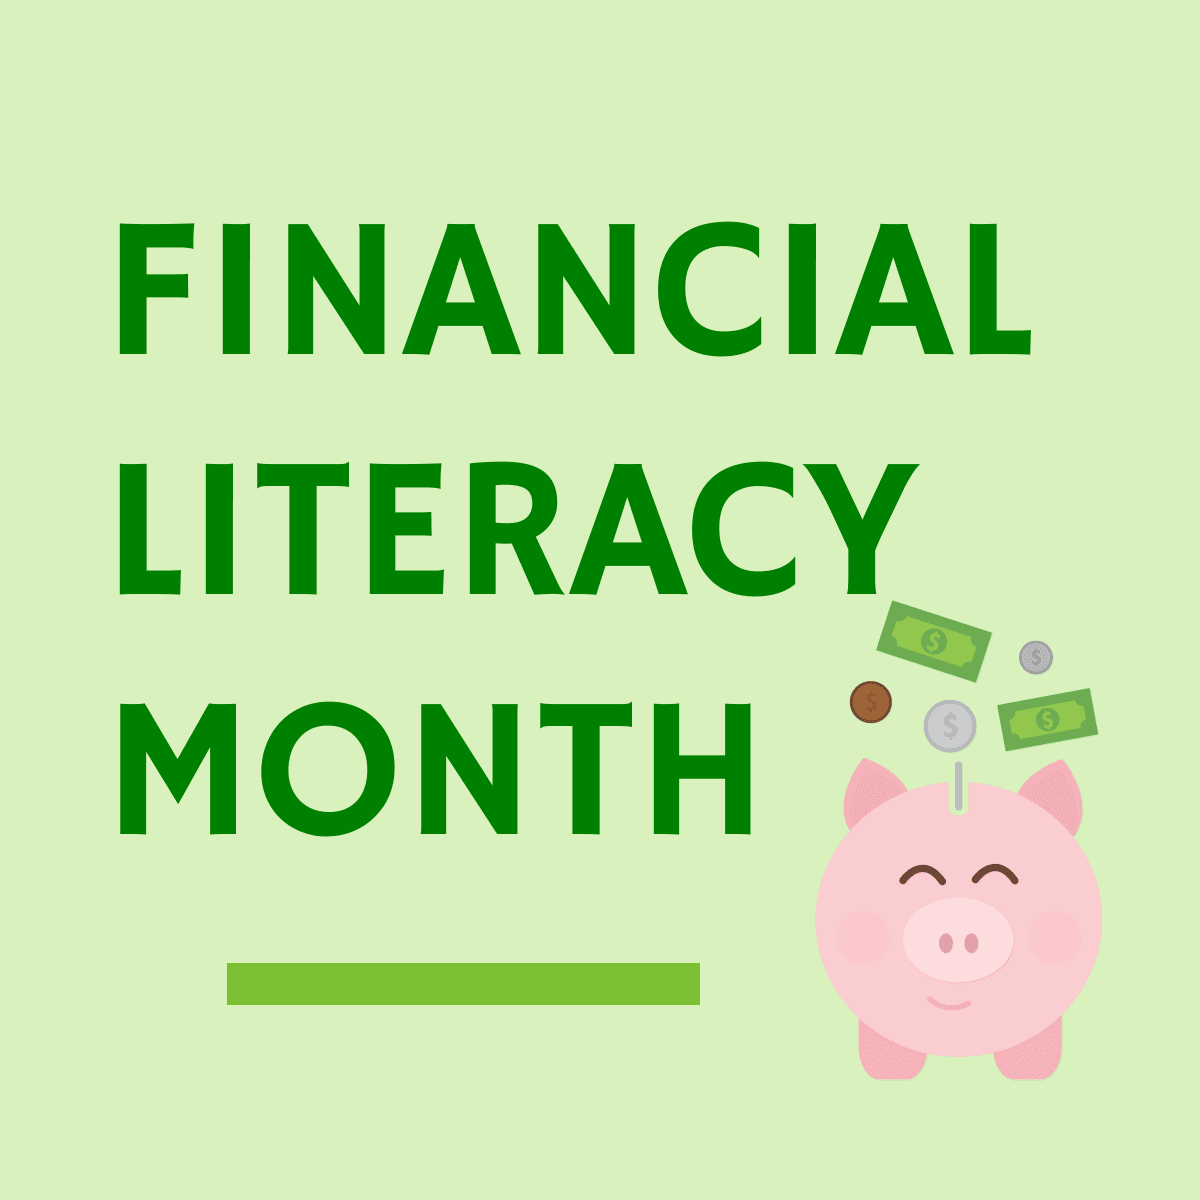 Financial Literacy Month with picture of piggy bank, bills and coins